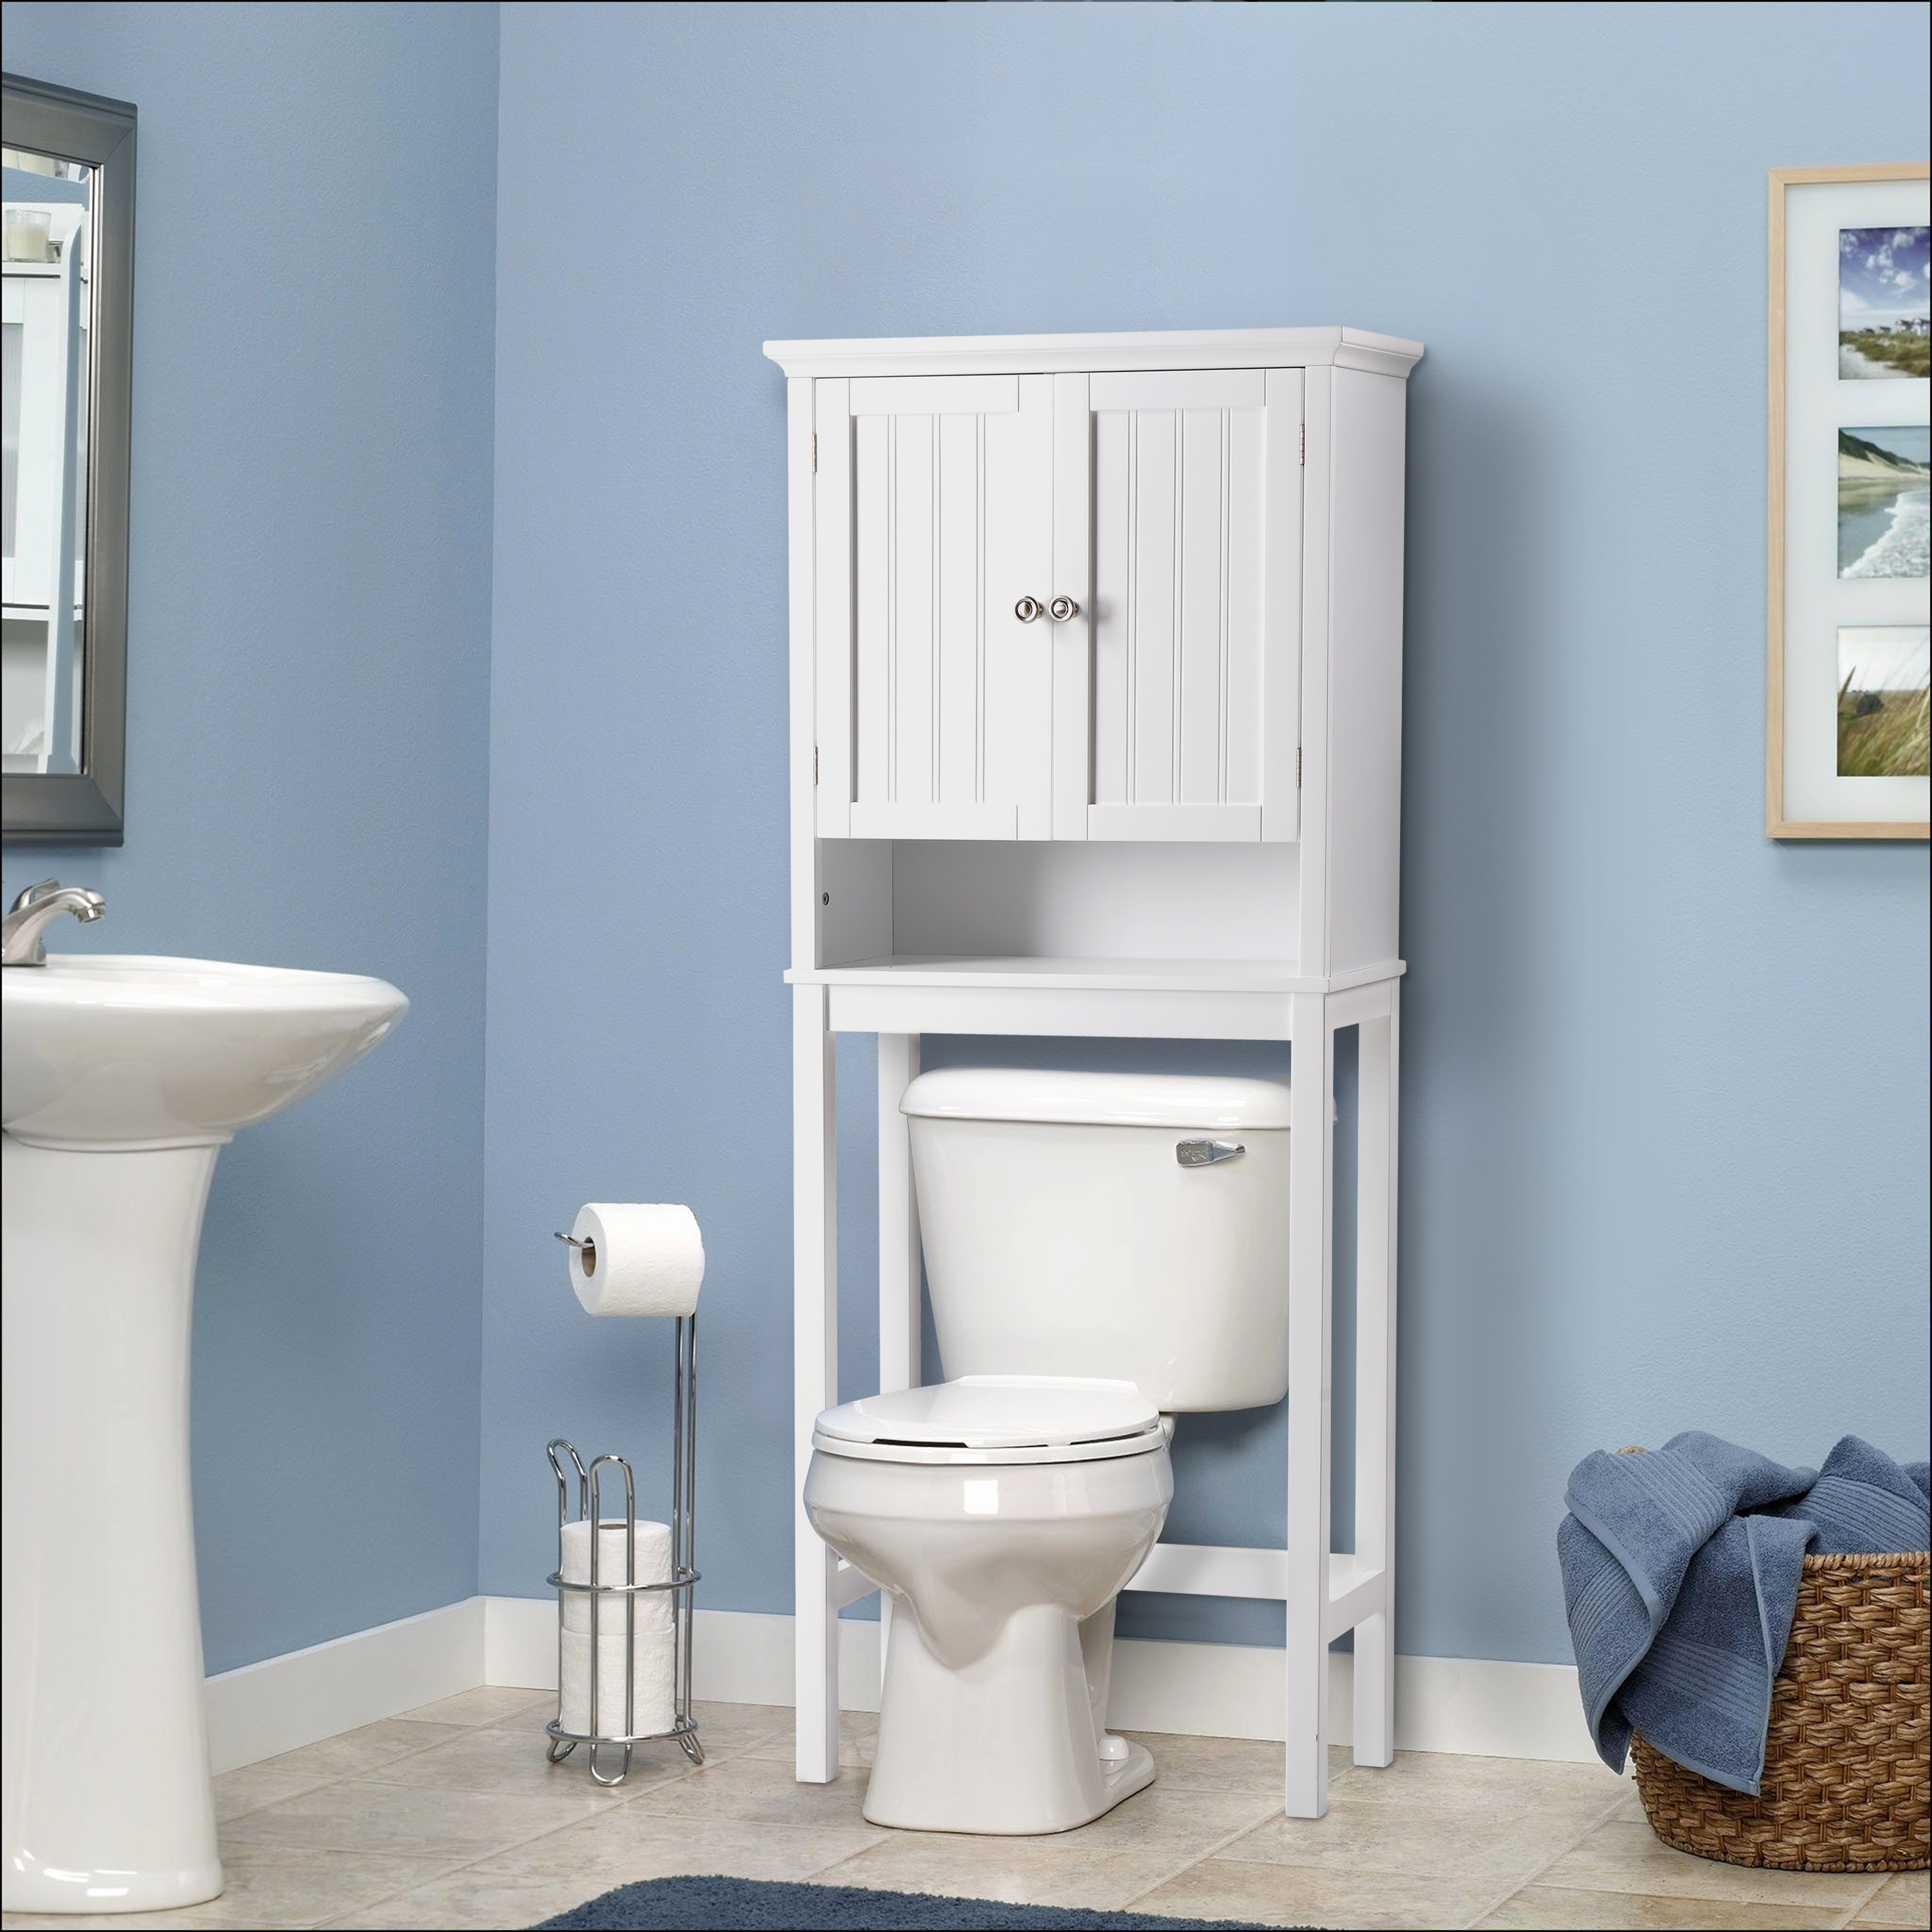 OS Home and Office Furniture Bathroom Space Saver over toilet